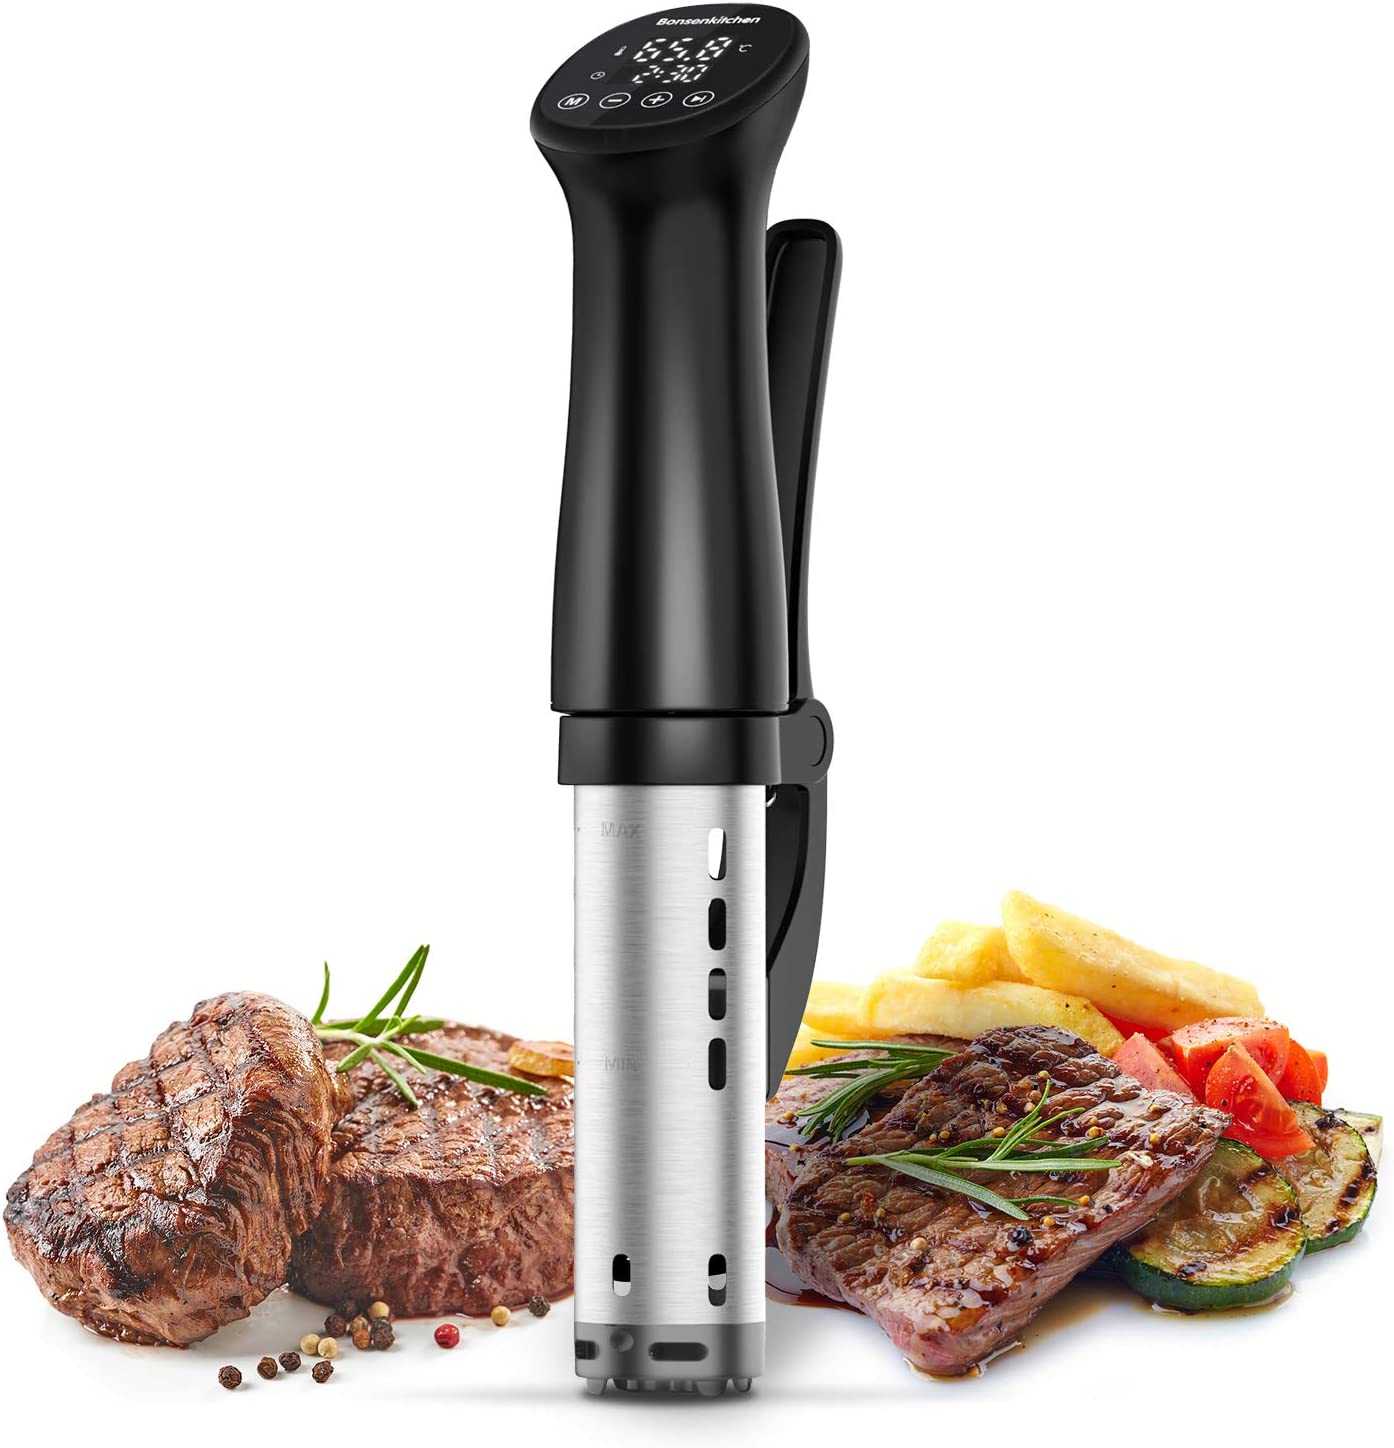 Sous Vide Precision Cooker 1200W Ultra-quiet,IPX7 Waterproof,Thermal Immersion Circulators with Big Digital Touchscreen Display,Control Temperature and Timer for Kitchen